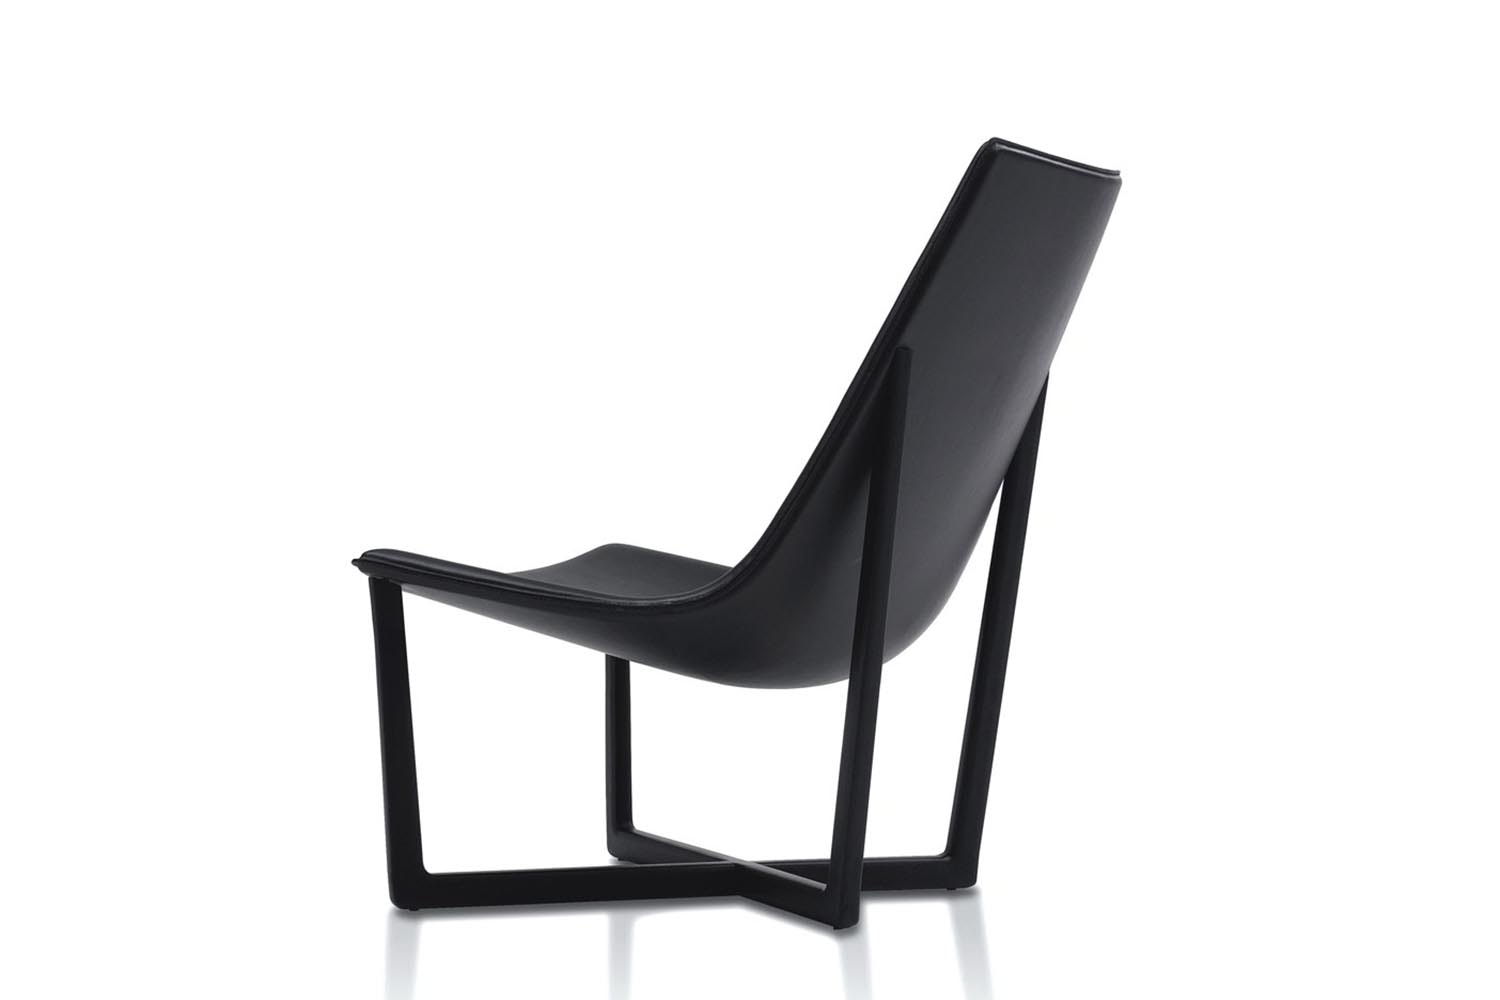 Jade Armchair by Christophe Pillet for Porro